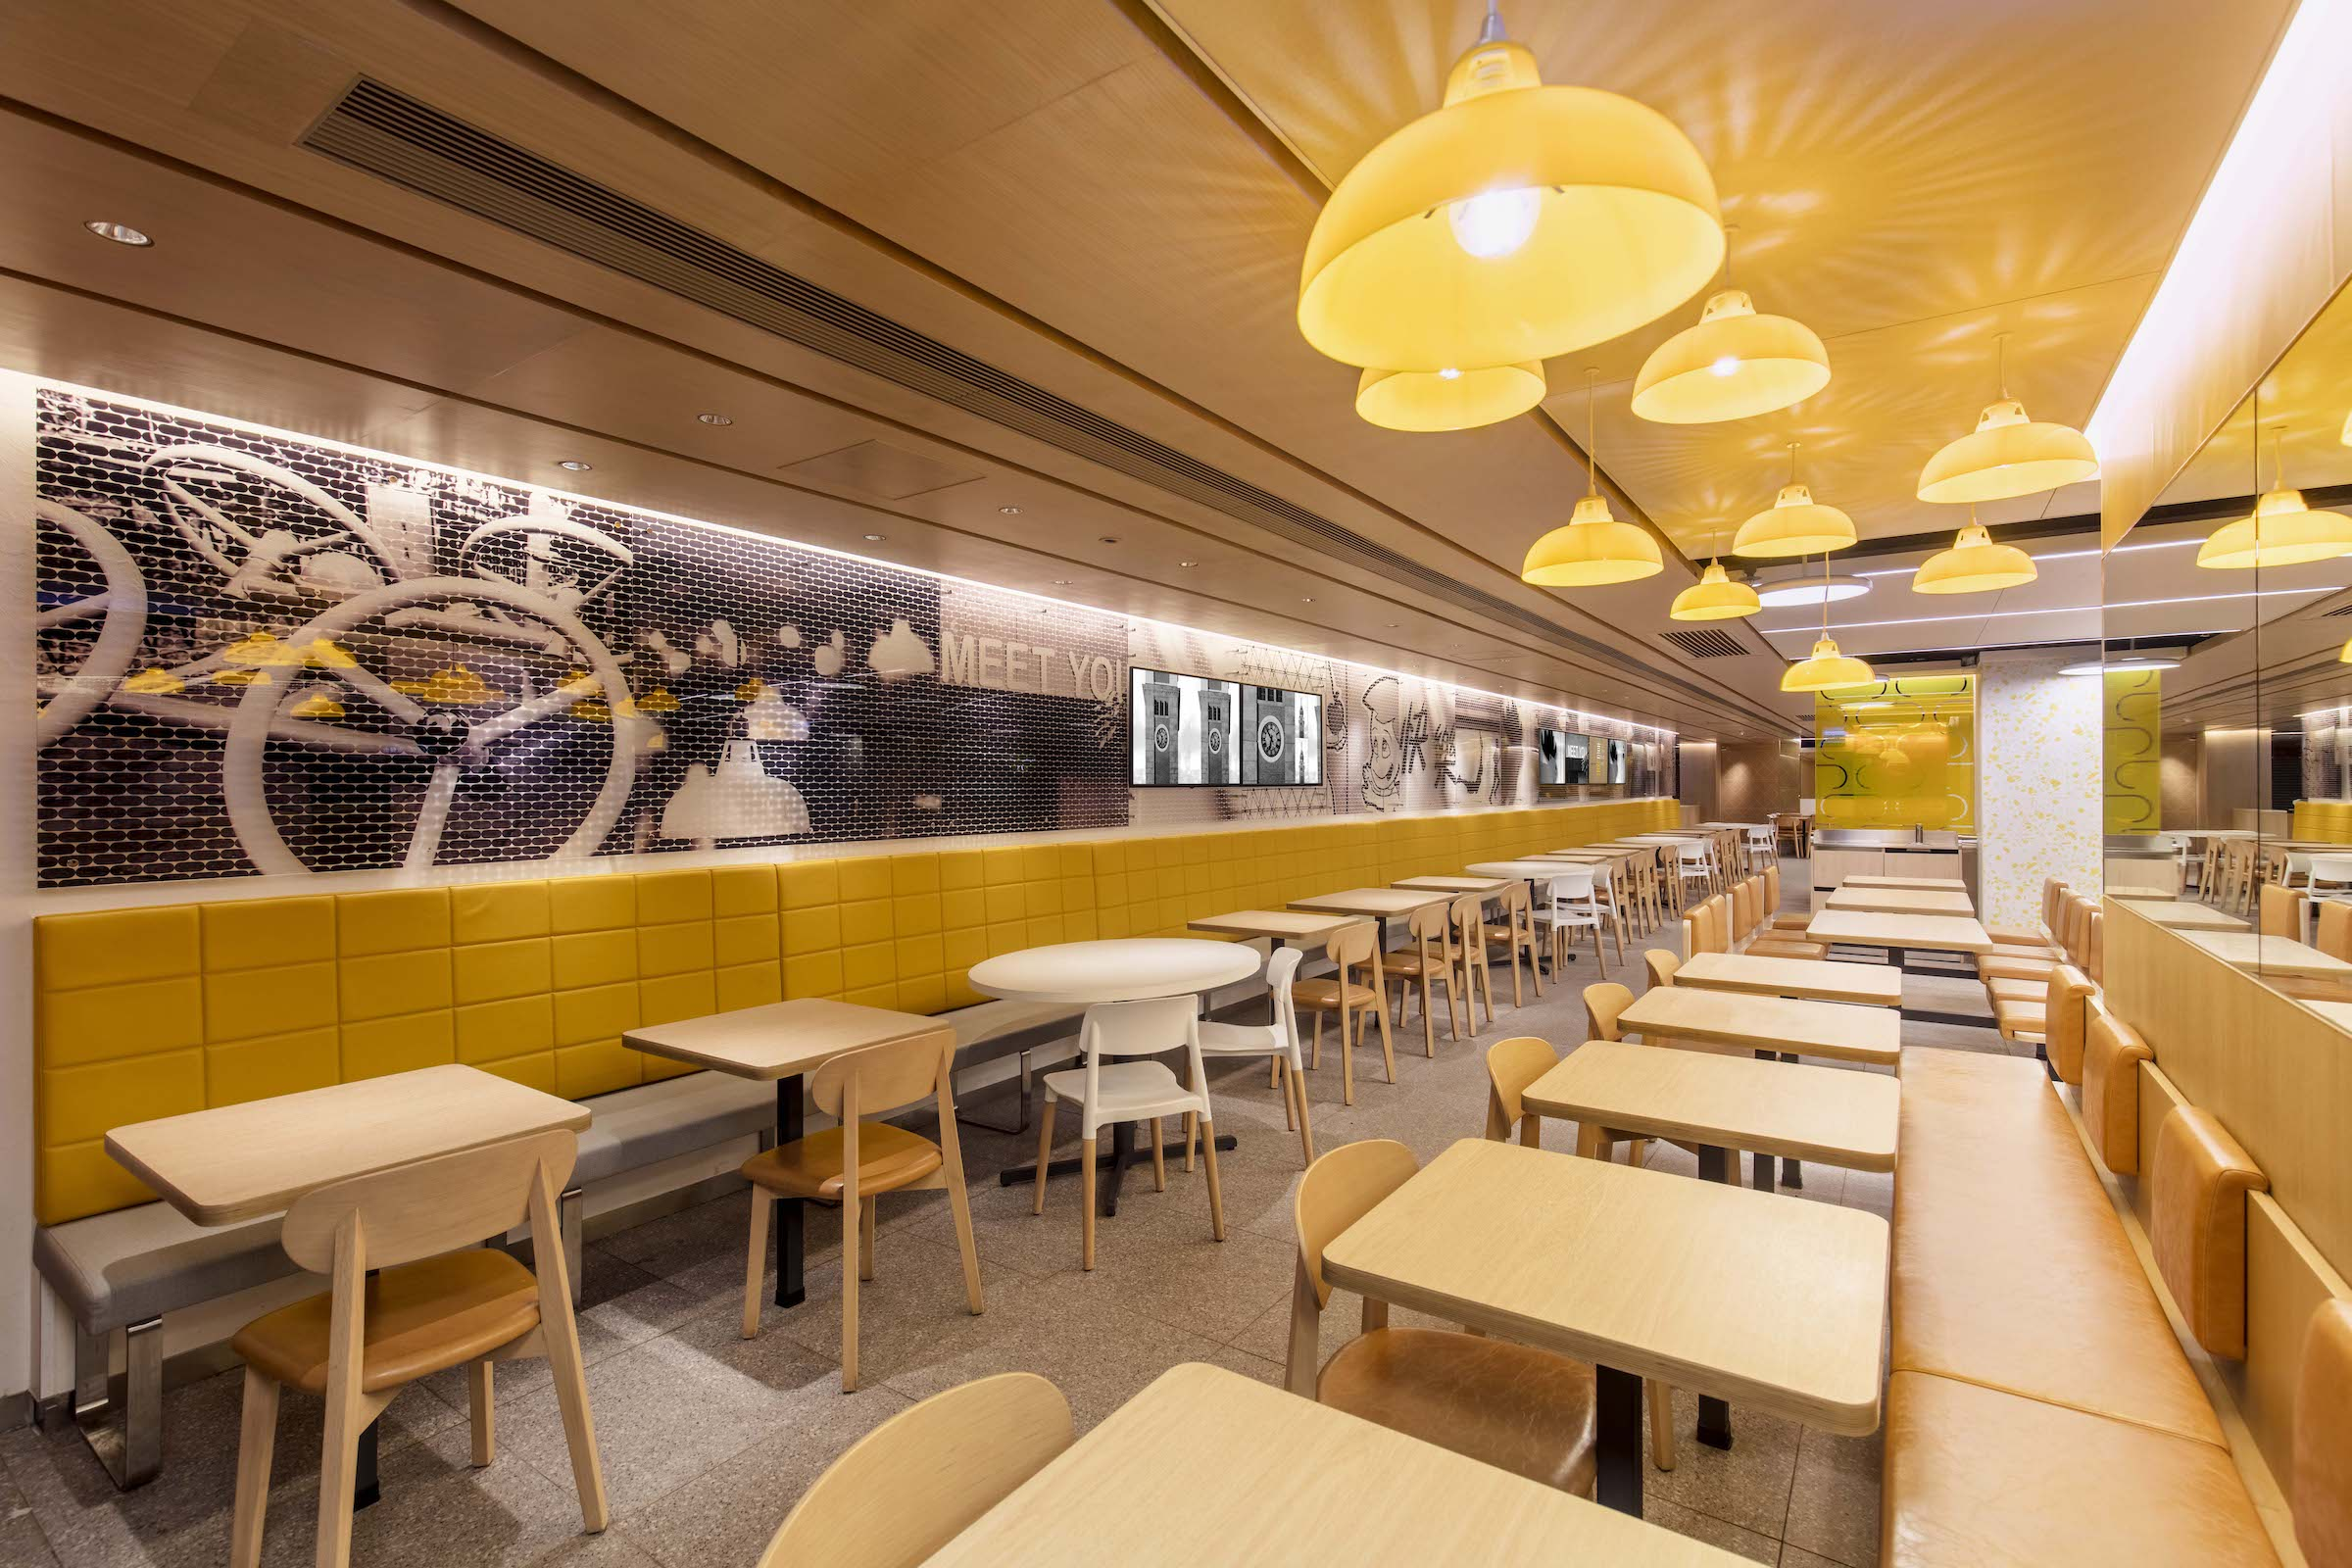 Moebius | Cafe de Coral full-year net profit up 28 9% to HK$590M